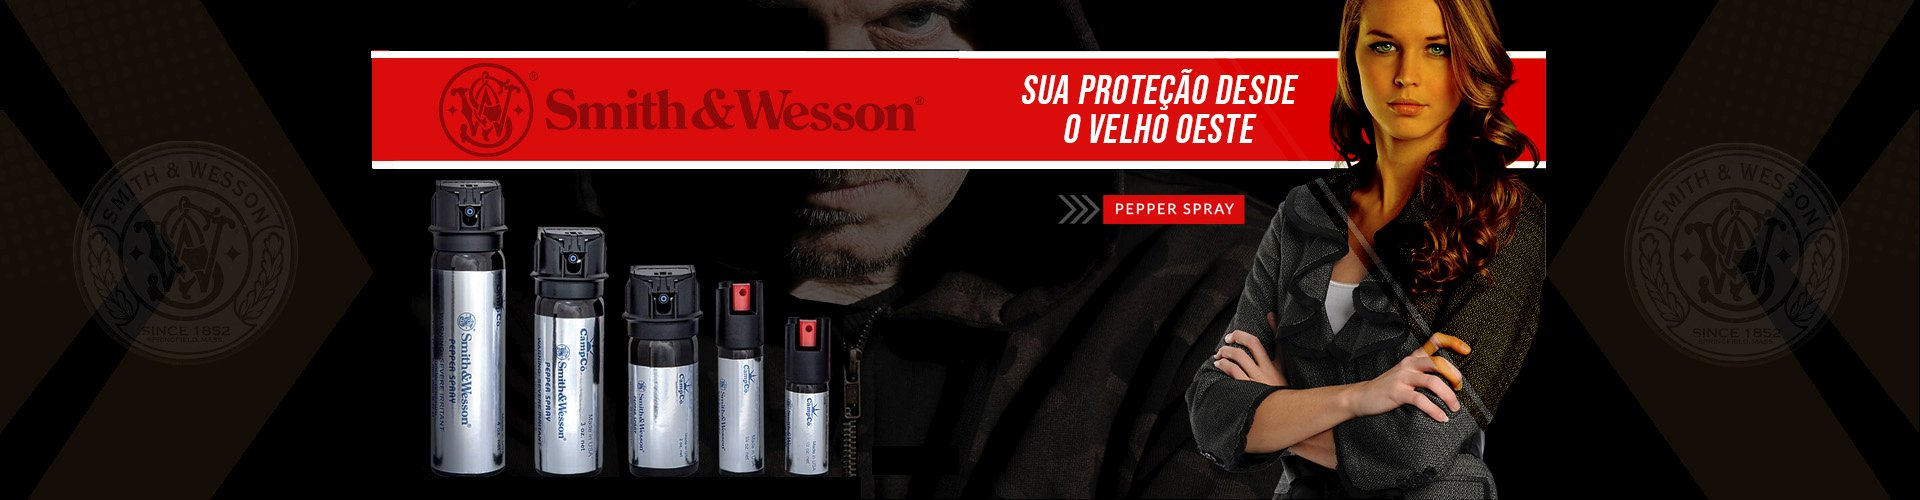 SPRAY DE PIMENTA SMITH & WESSON